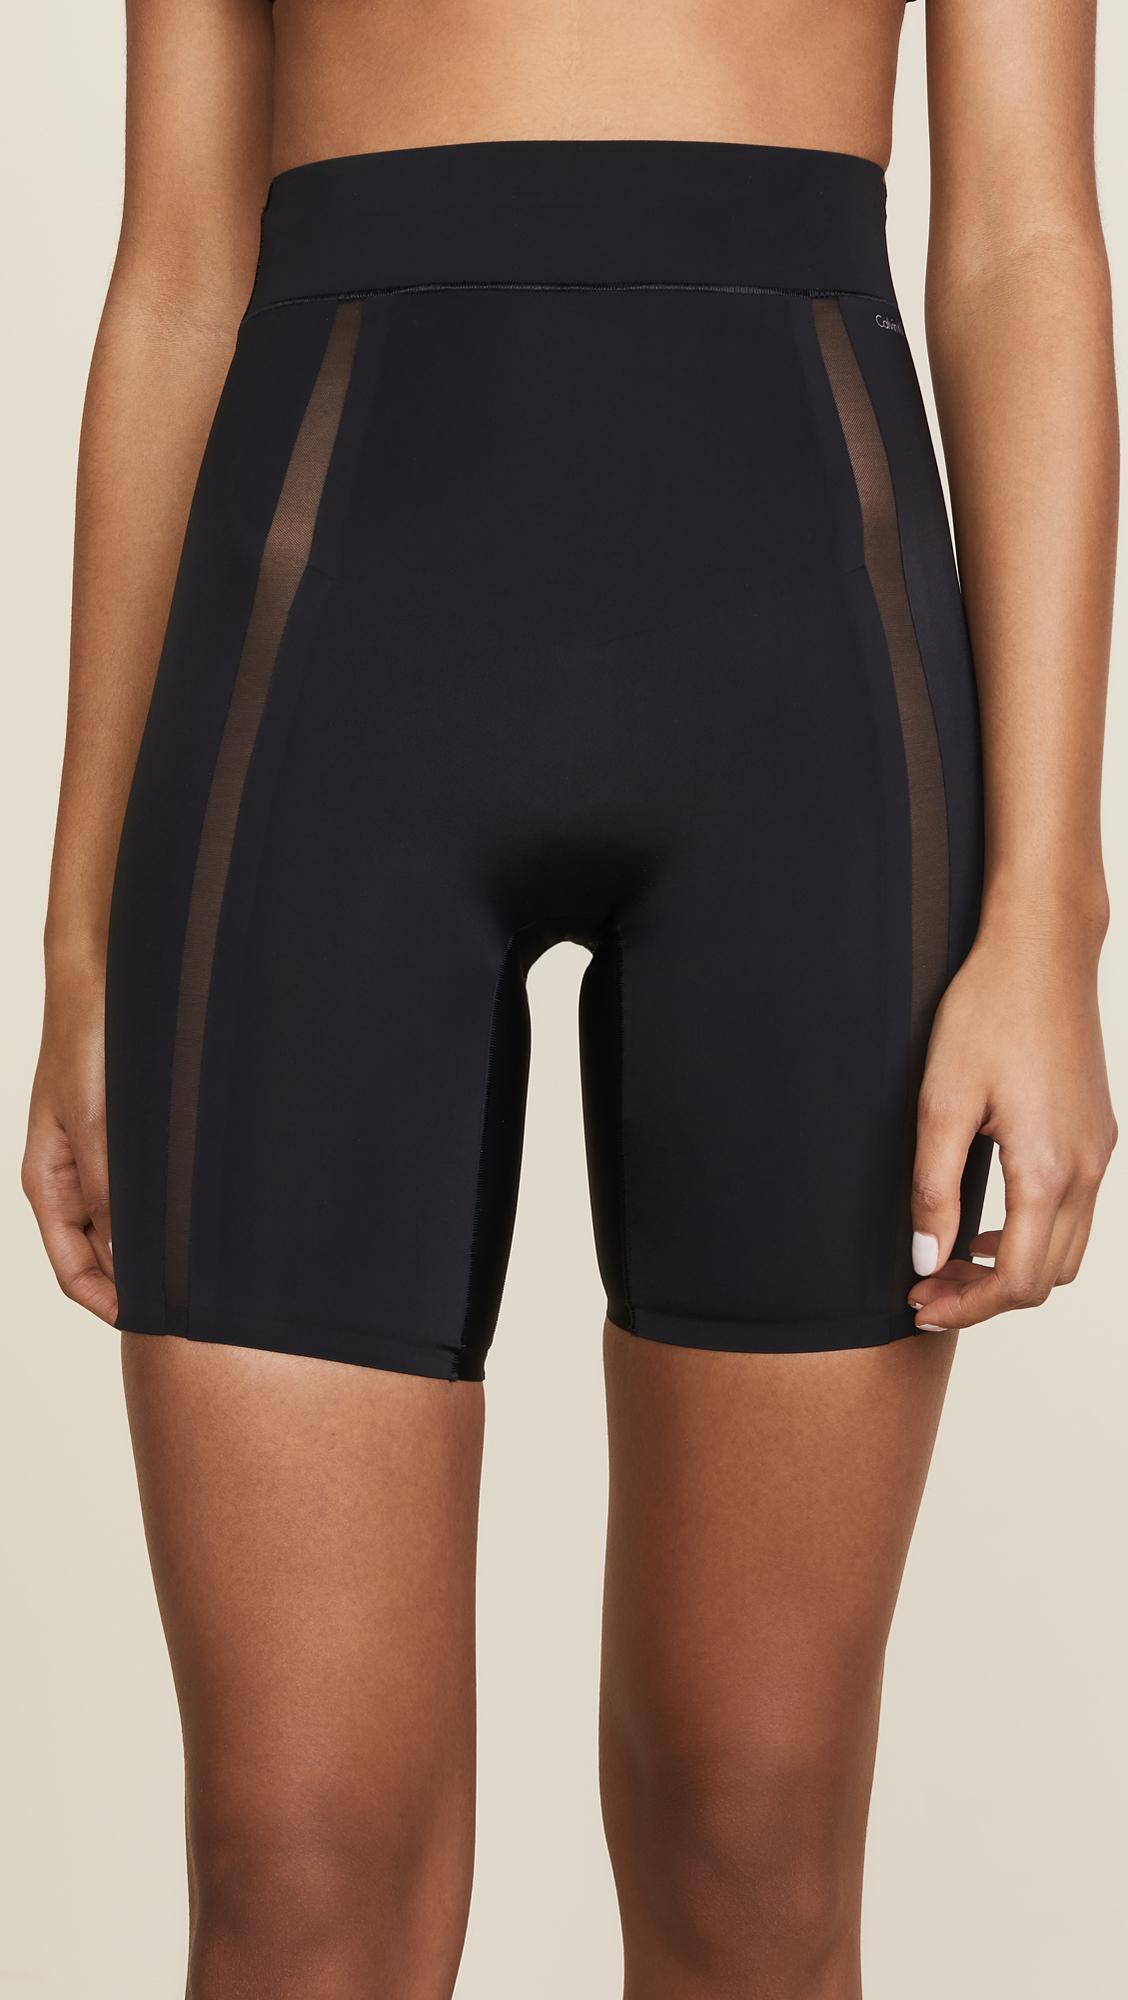 6531a721a5 Lyst - Calvin Klein Short Thigh Slimmer in Black